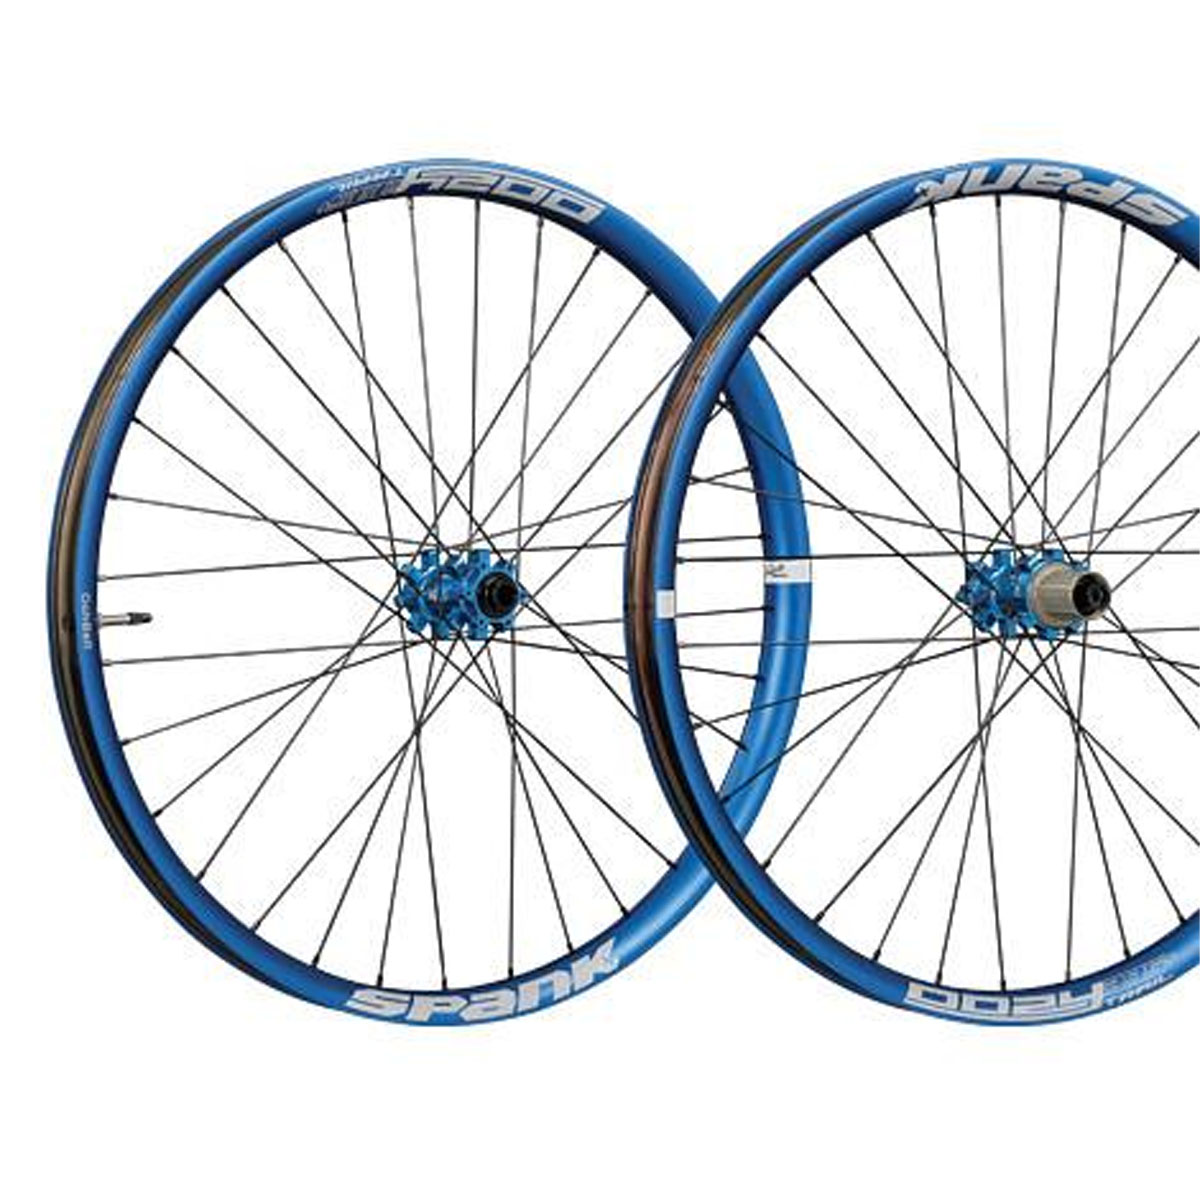 Spank OOZY Trail 395+ Bicycle Wheelset - 27.5 inches - C08OT3921